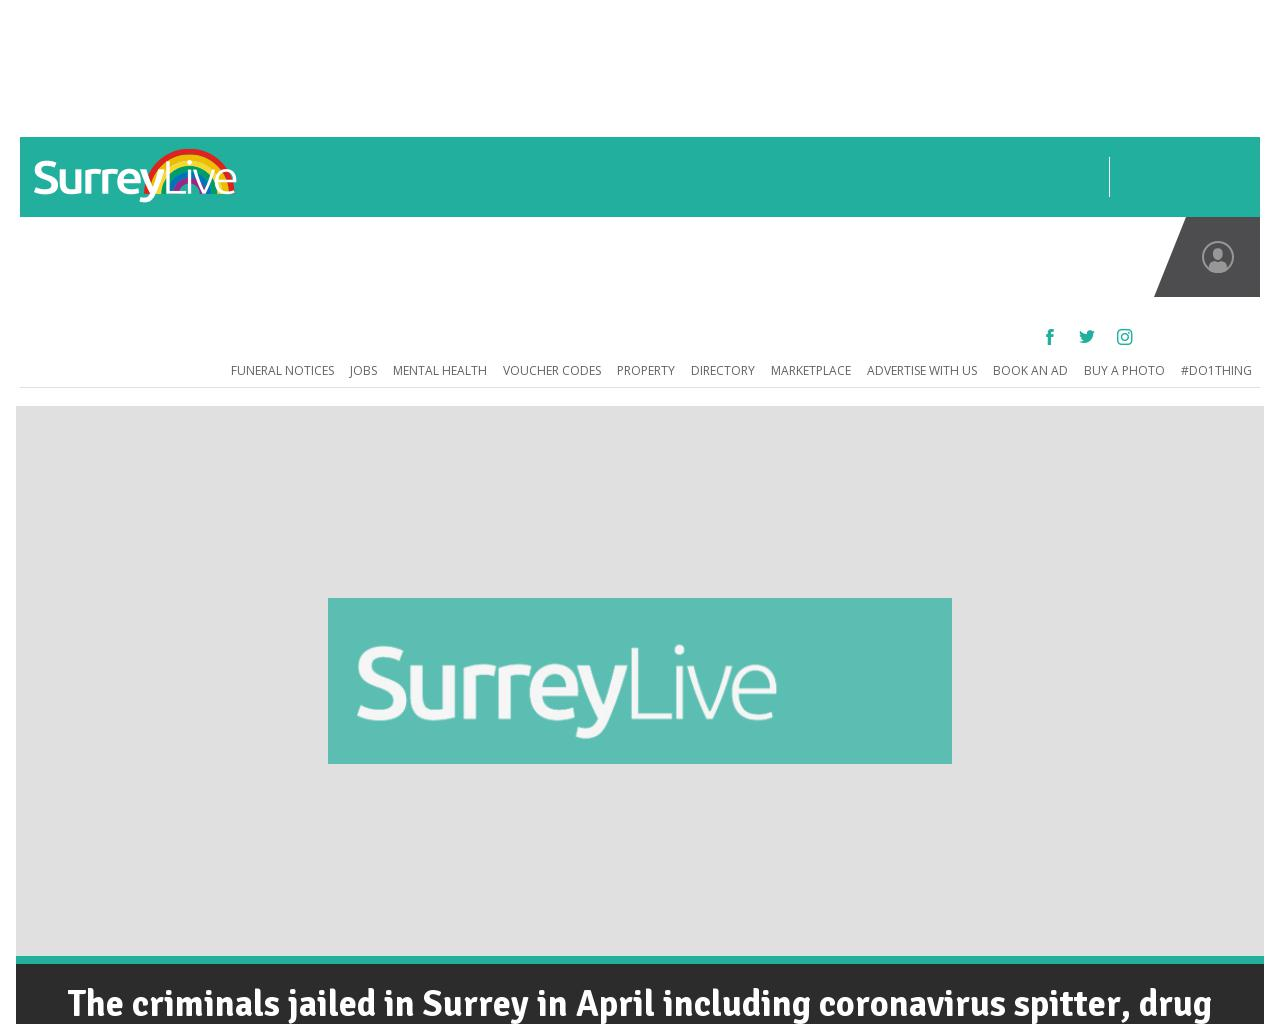 getsurrey.co.uk